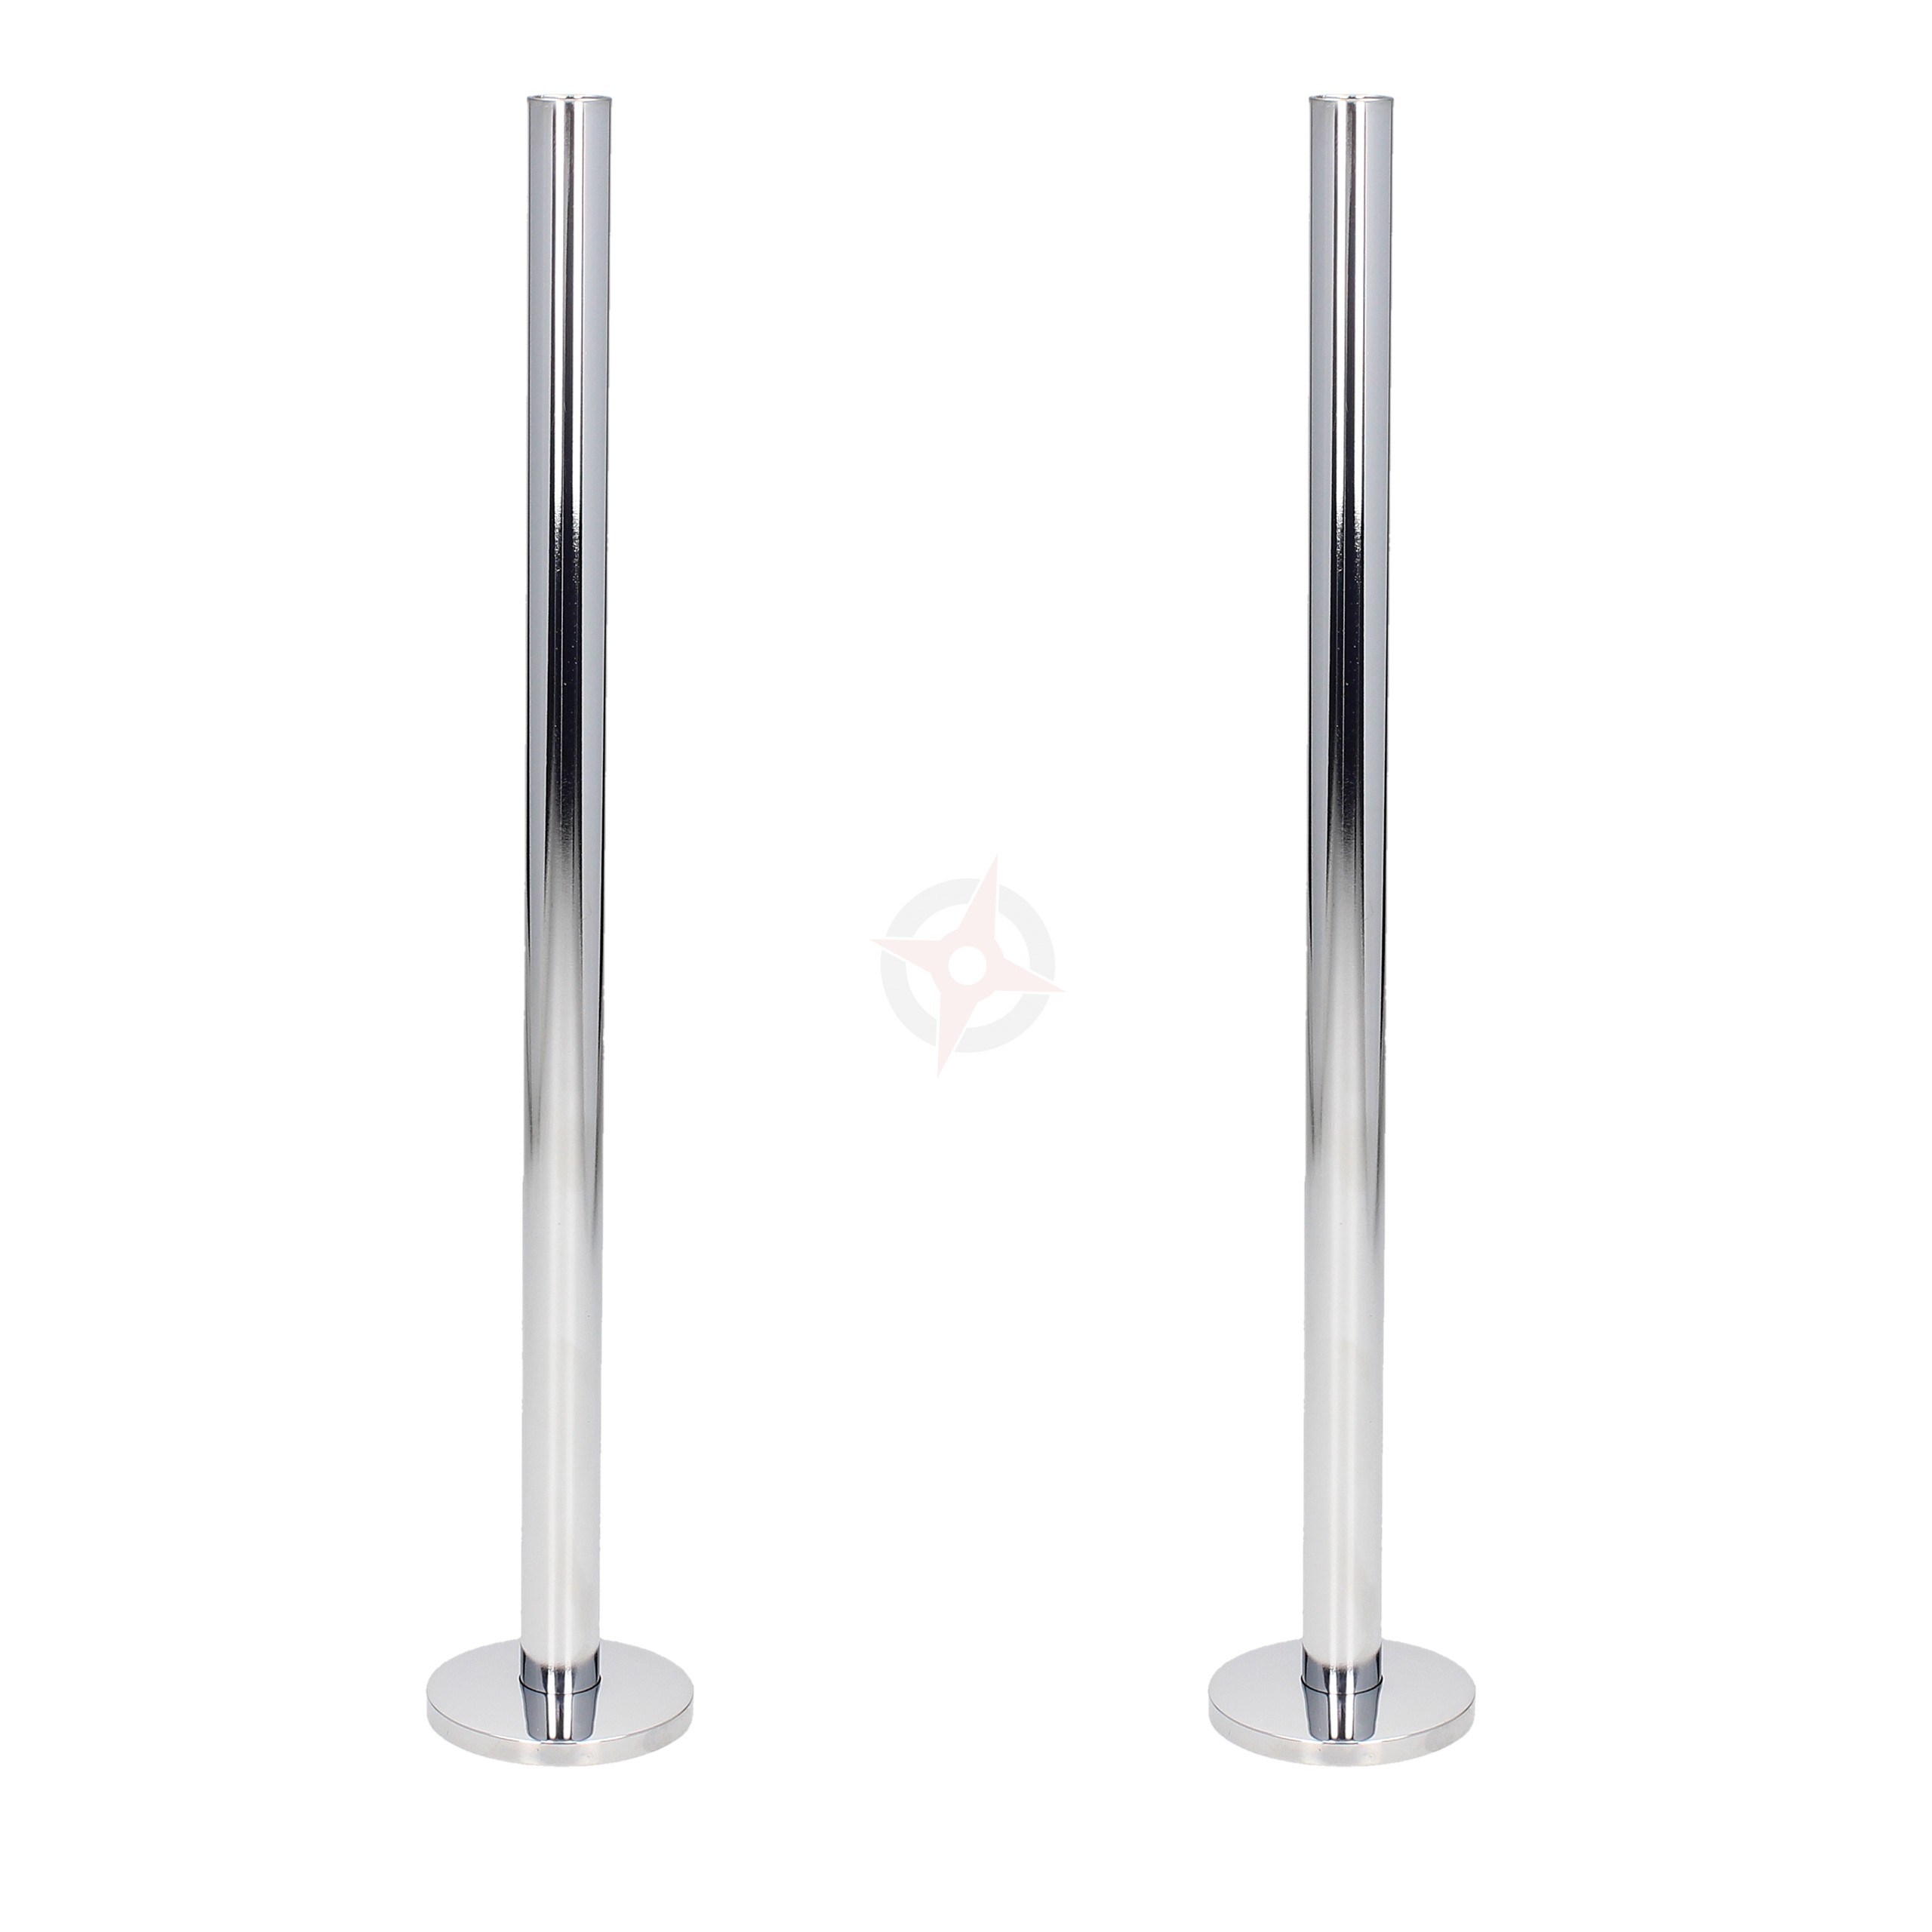 Chrome 15mm x 300mm Tails and Decoration Floor Cover Plates (Pair)